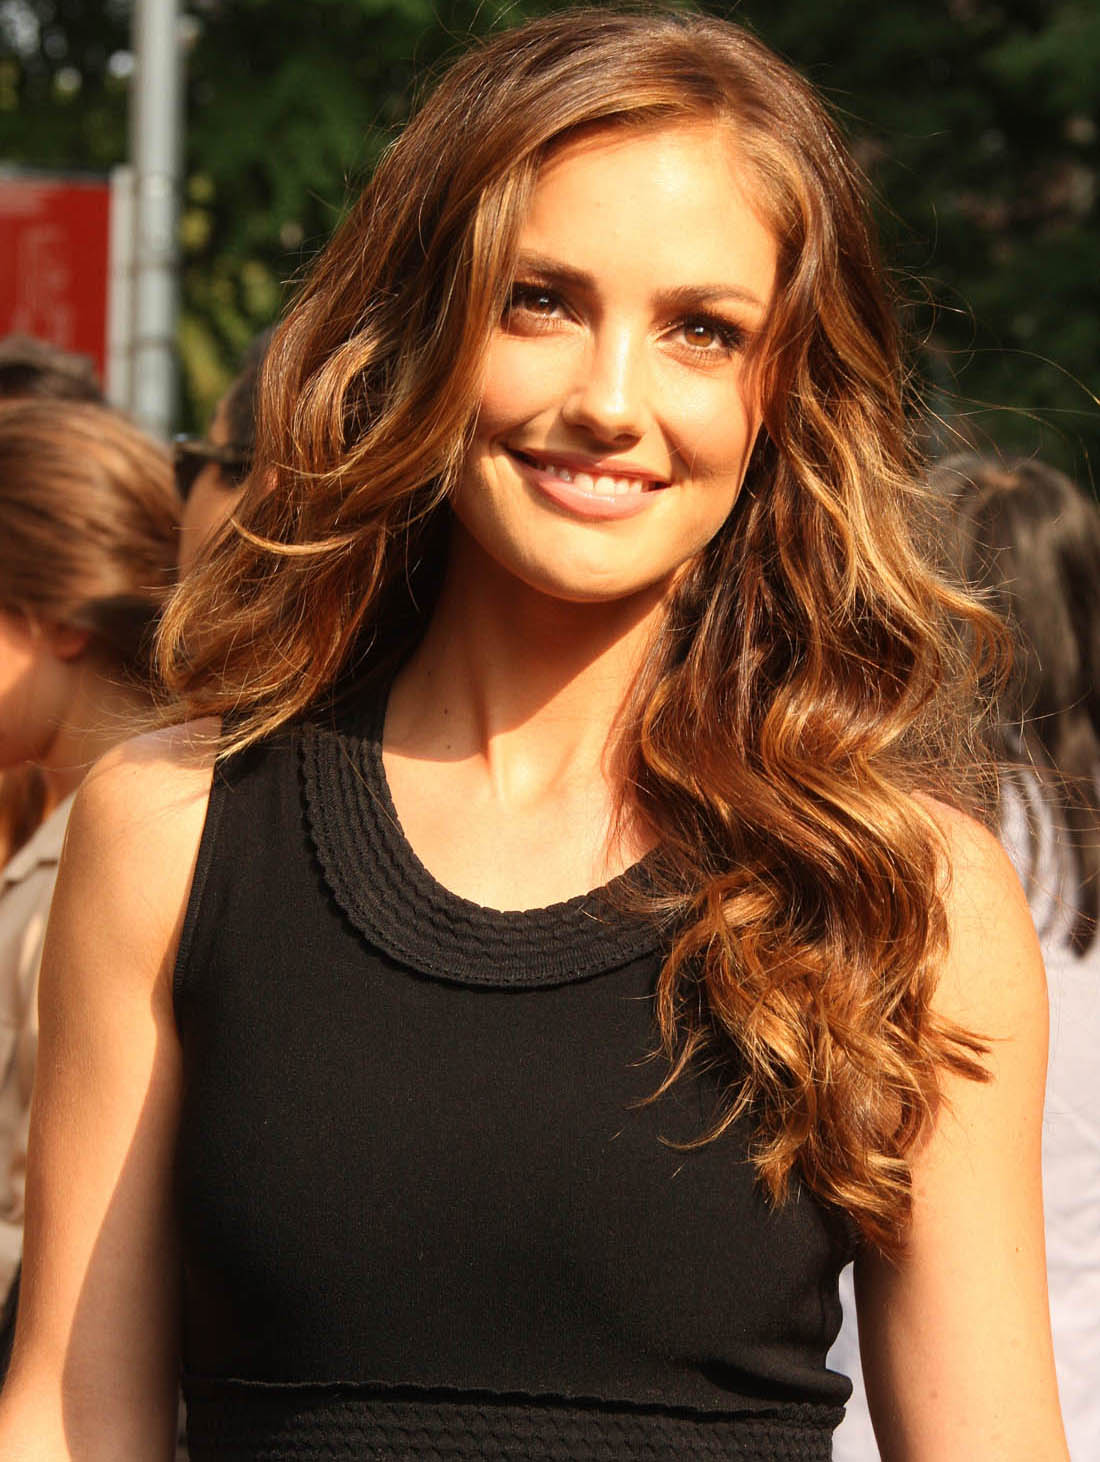 Minka Kelly Pictures Hotness Rating  95010-7262